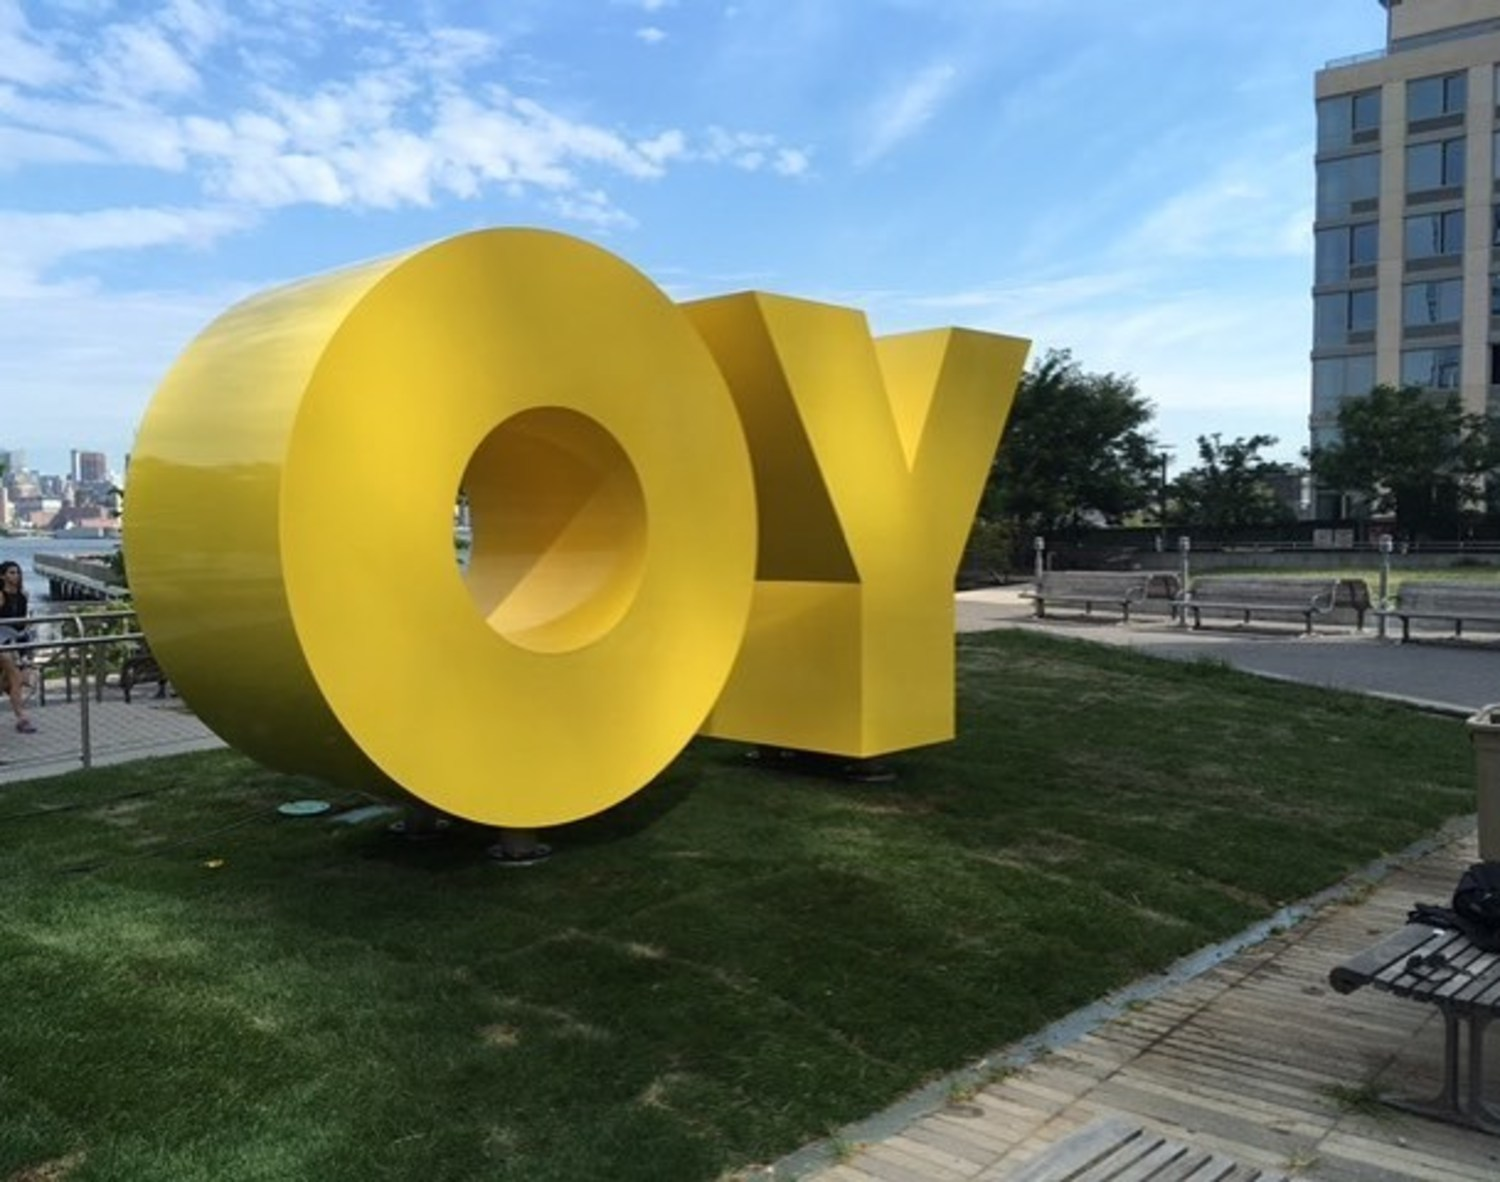 Hello gorgeous! #OYYO #nycparks #publicart #sculpture #publicsculpture #brooklynmuseum #nycferry #nycculture #paulkasmingallery #brandnewgallerymilan #williamsburg #brandnewgallery #jewishmuseum #publicartfund  #lococofinearts #arthurrogergallery #ms.thao #caa #artintheparks